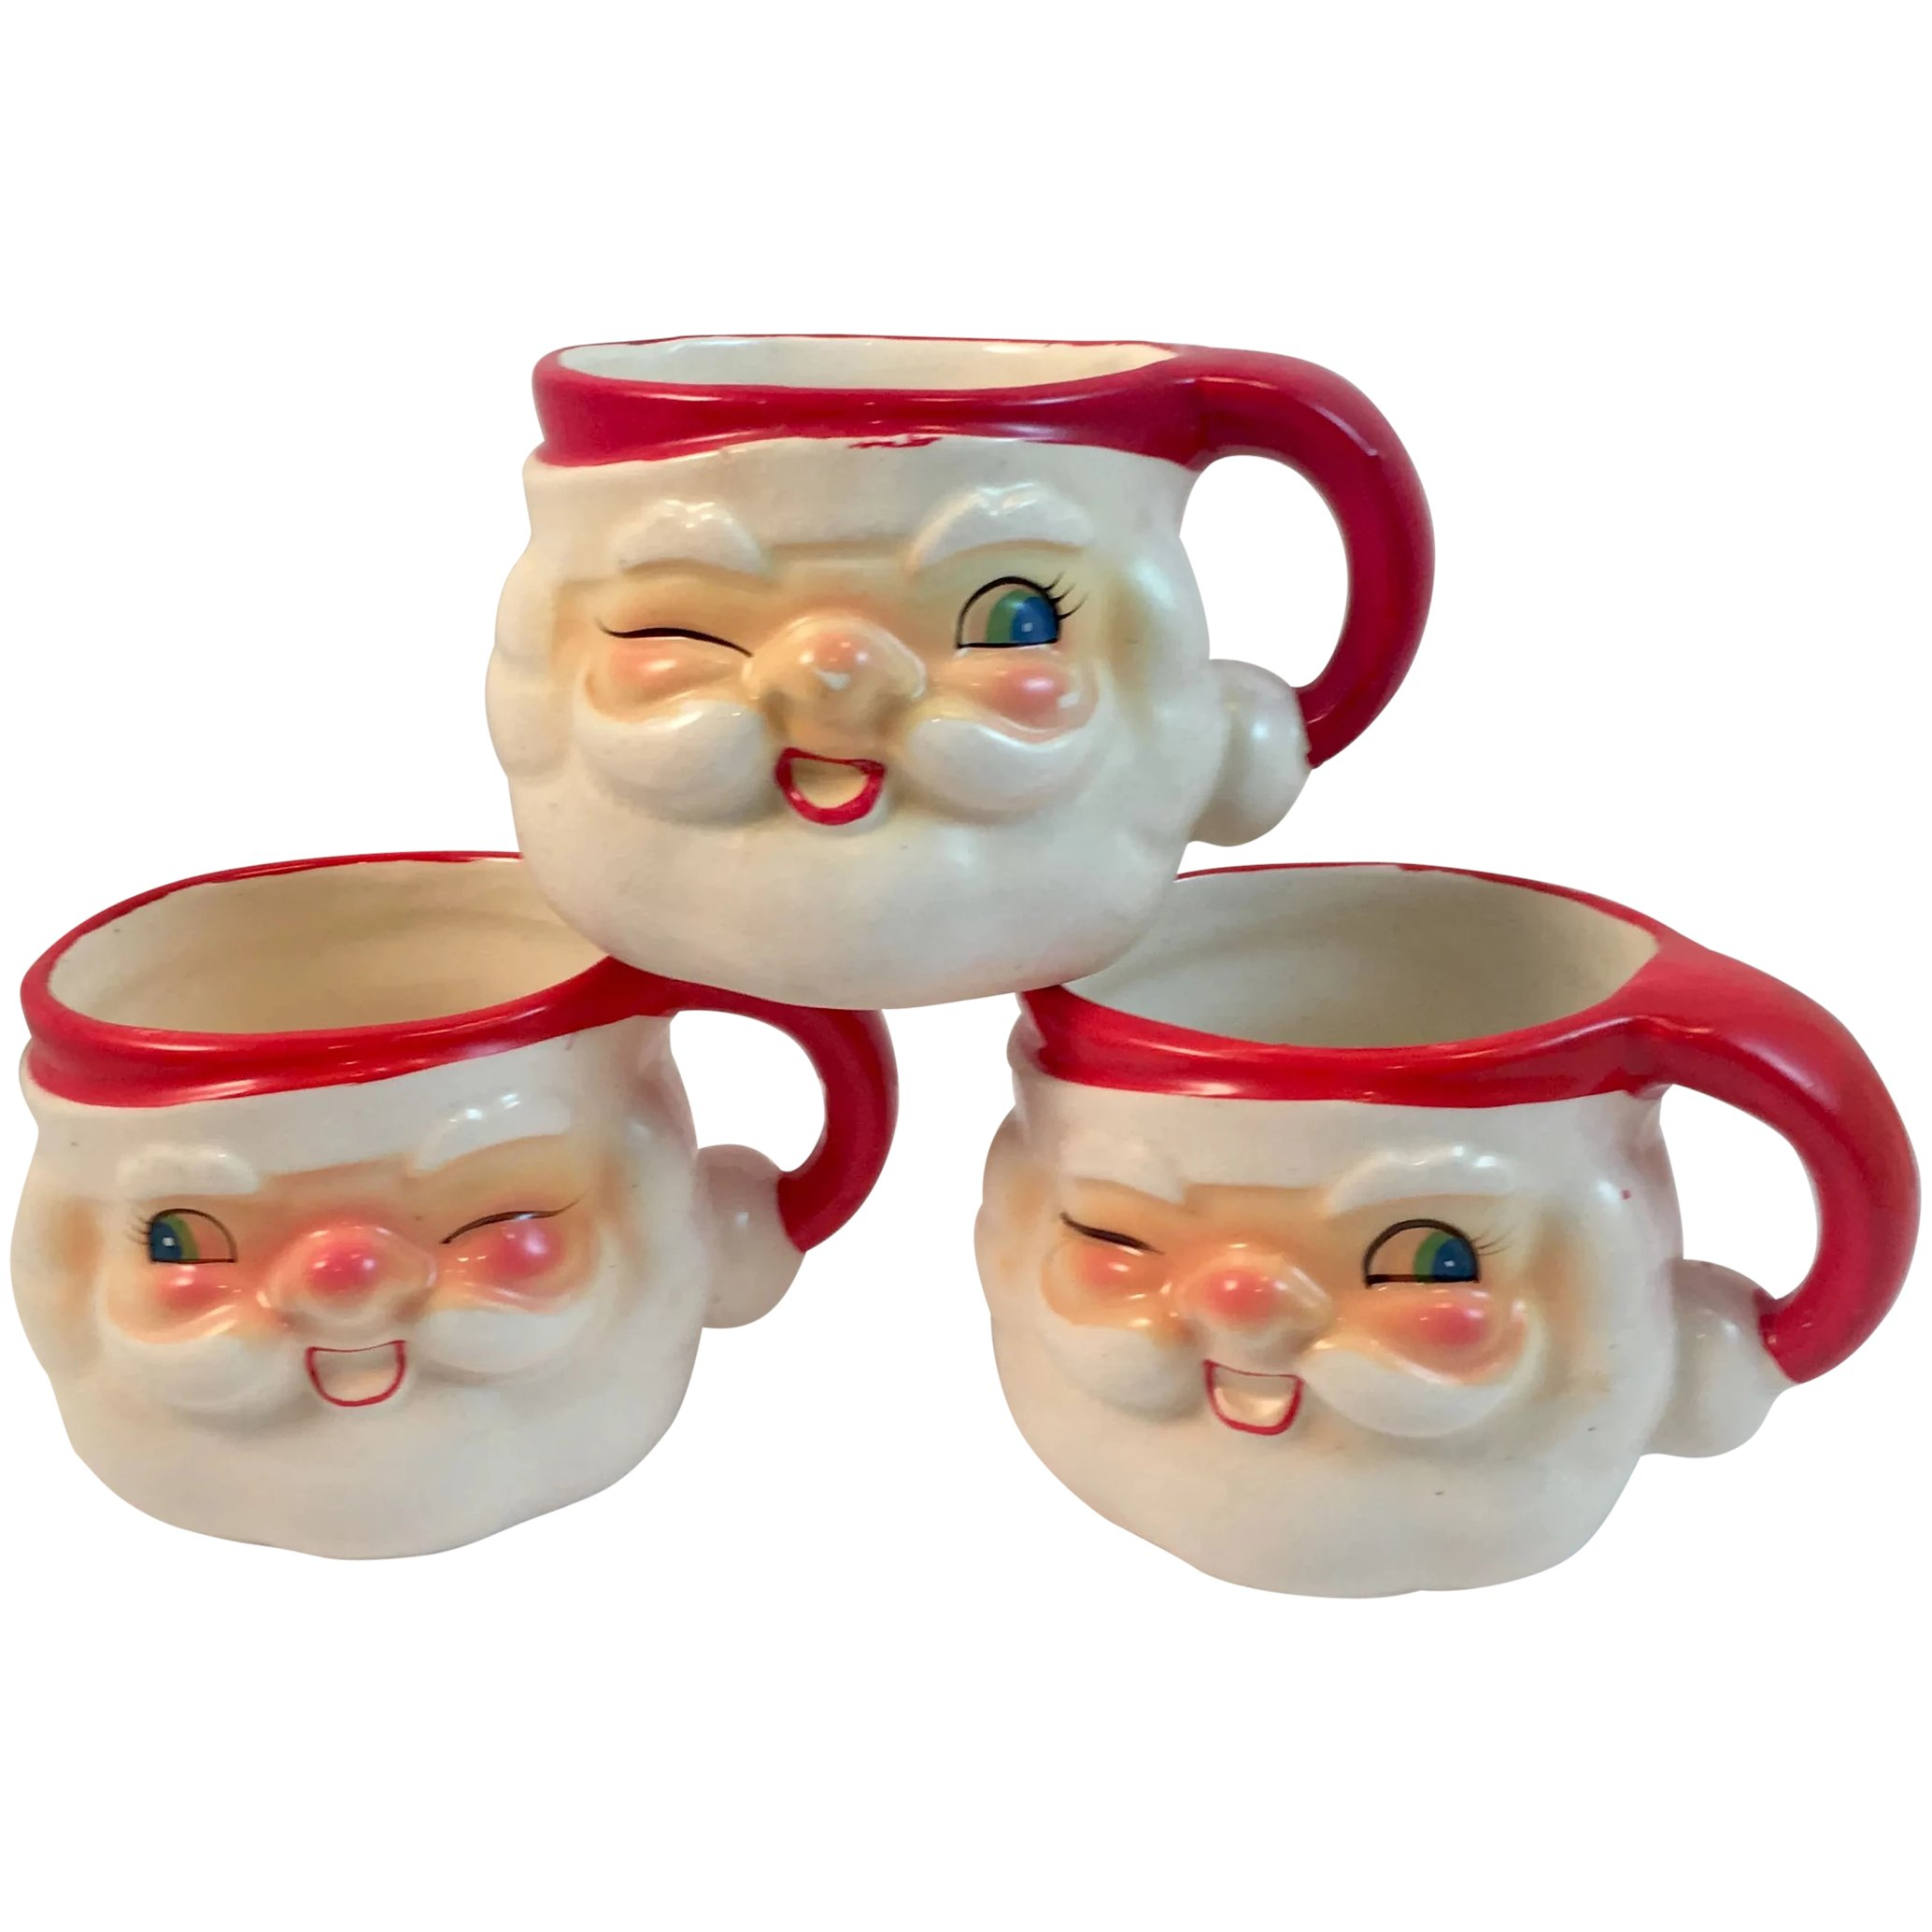 3 1960 Holt Howard Winking Santa Mugs With Blue Eyes Hh Vintage Ss Moore Antiques Ruby Lane